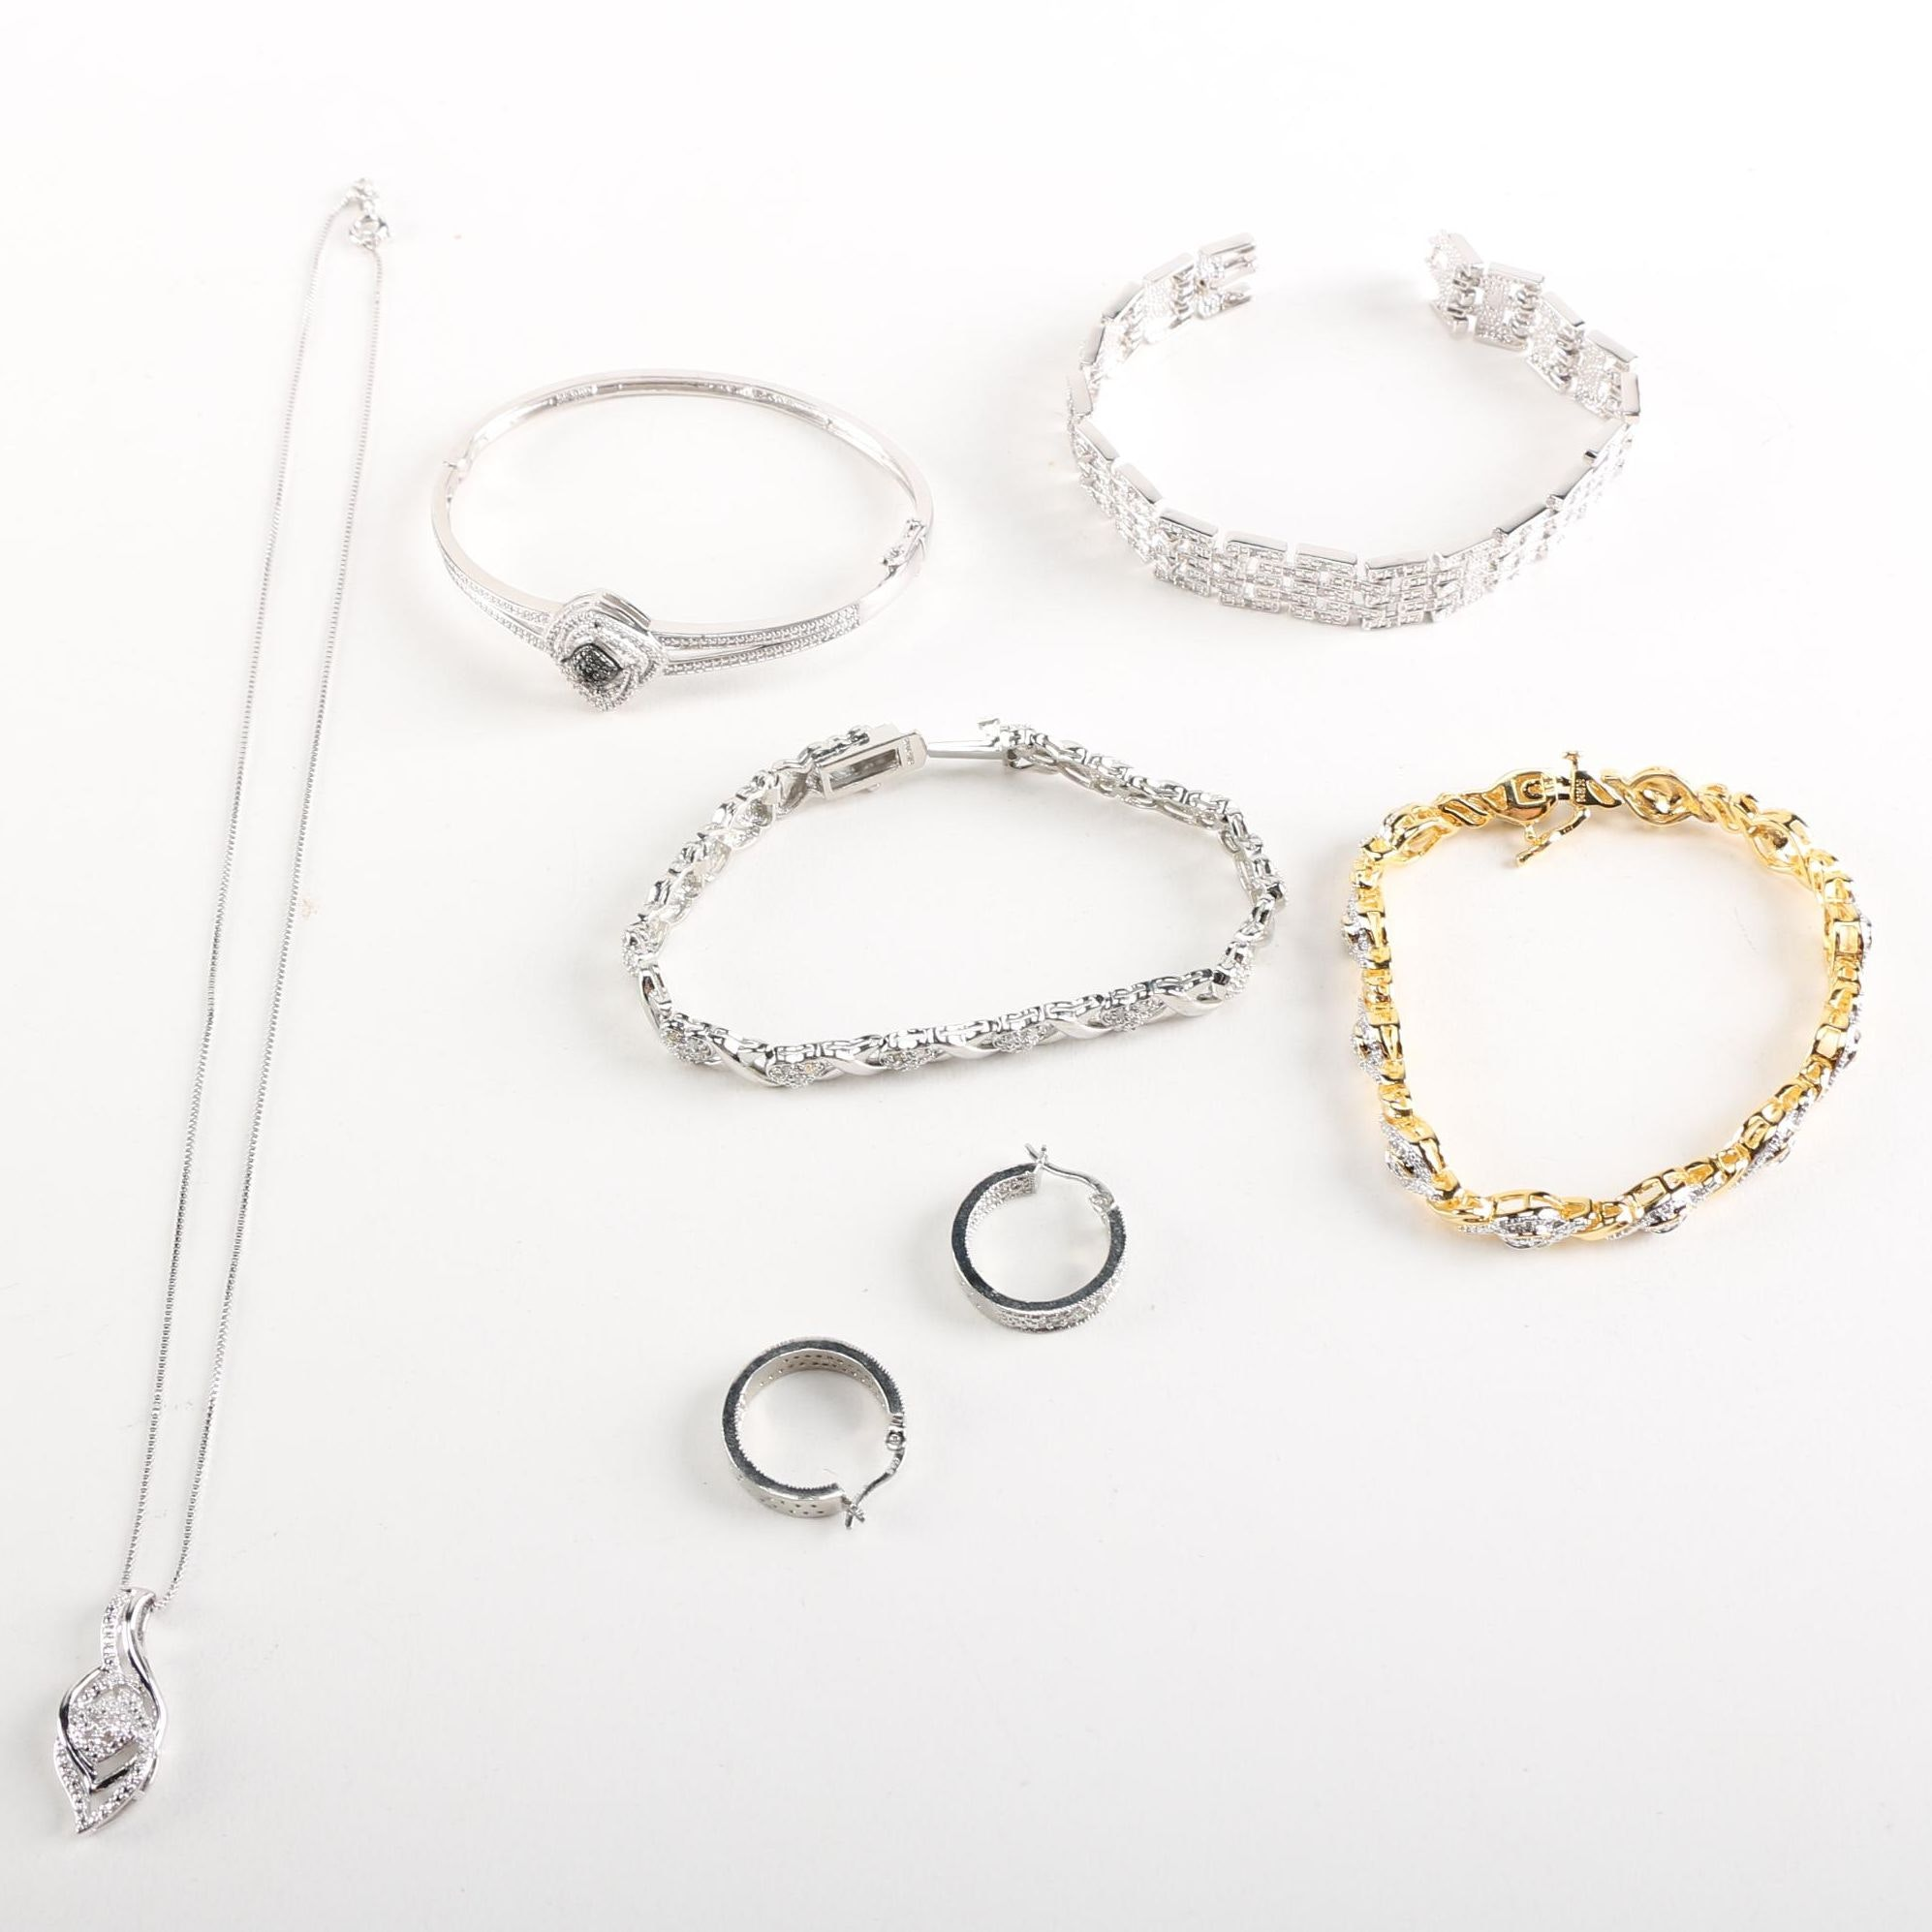 Costume Jewelry Bracelets, Earrings and Necklace With Diamonds